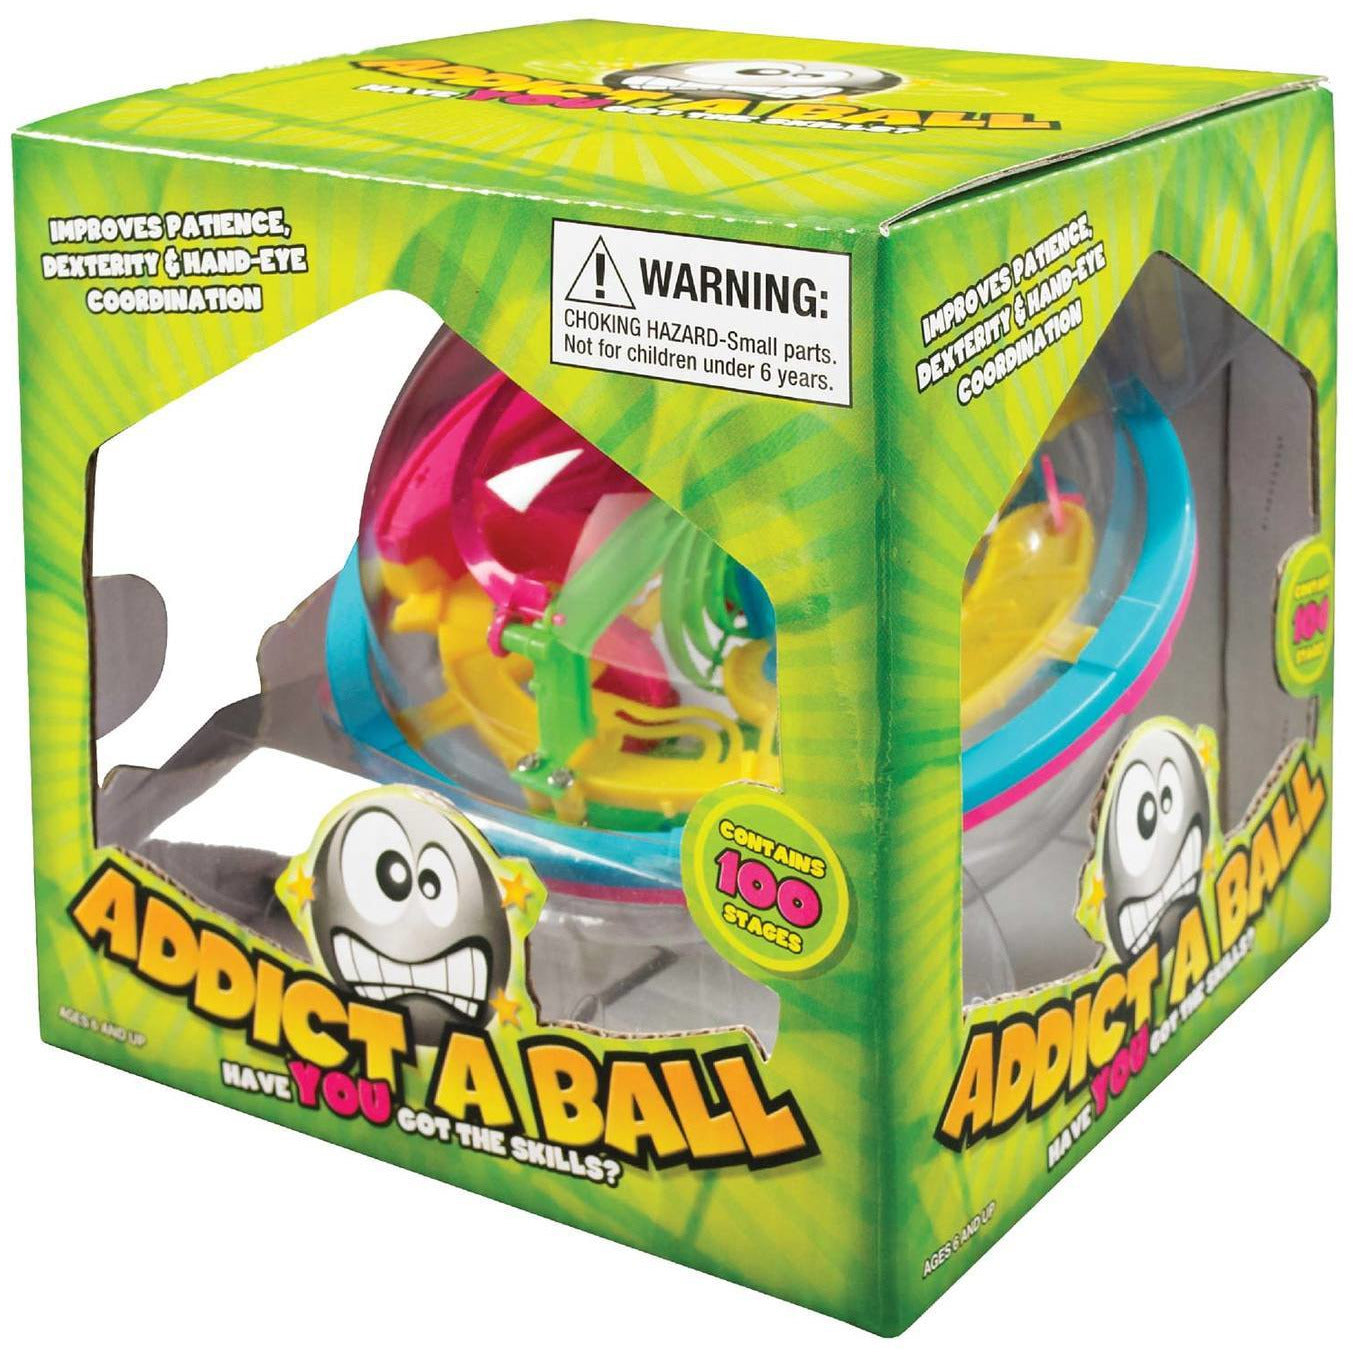 Image of Addict a Ball Small - 100 stages